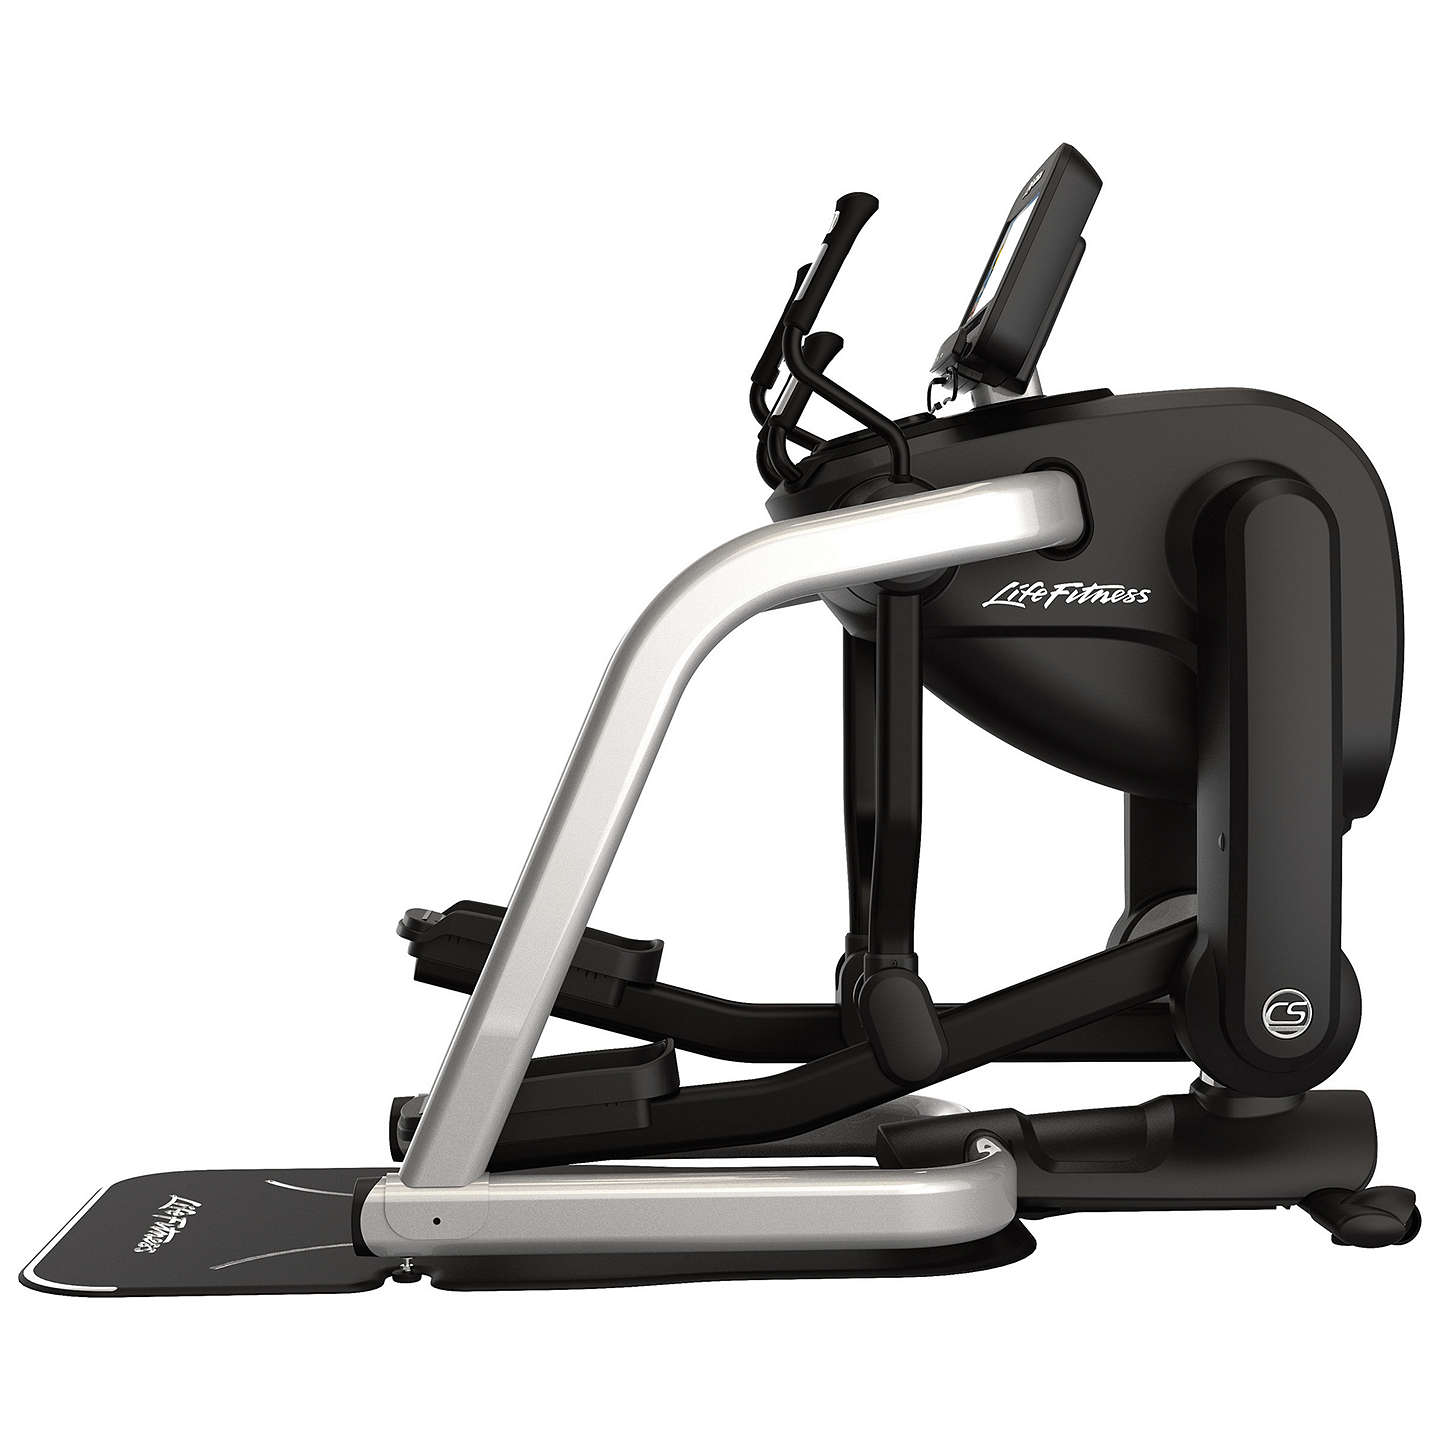 Gym Equipment John Lewis: Life Fitness FlexStrider Cross Trainer With Discover SI